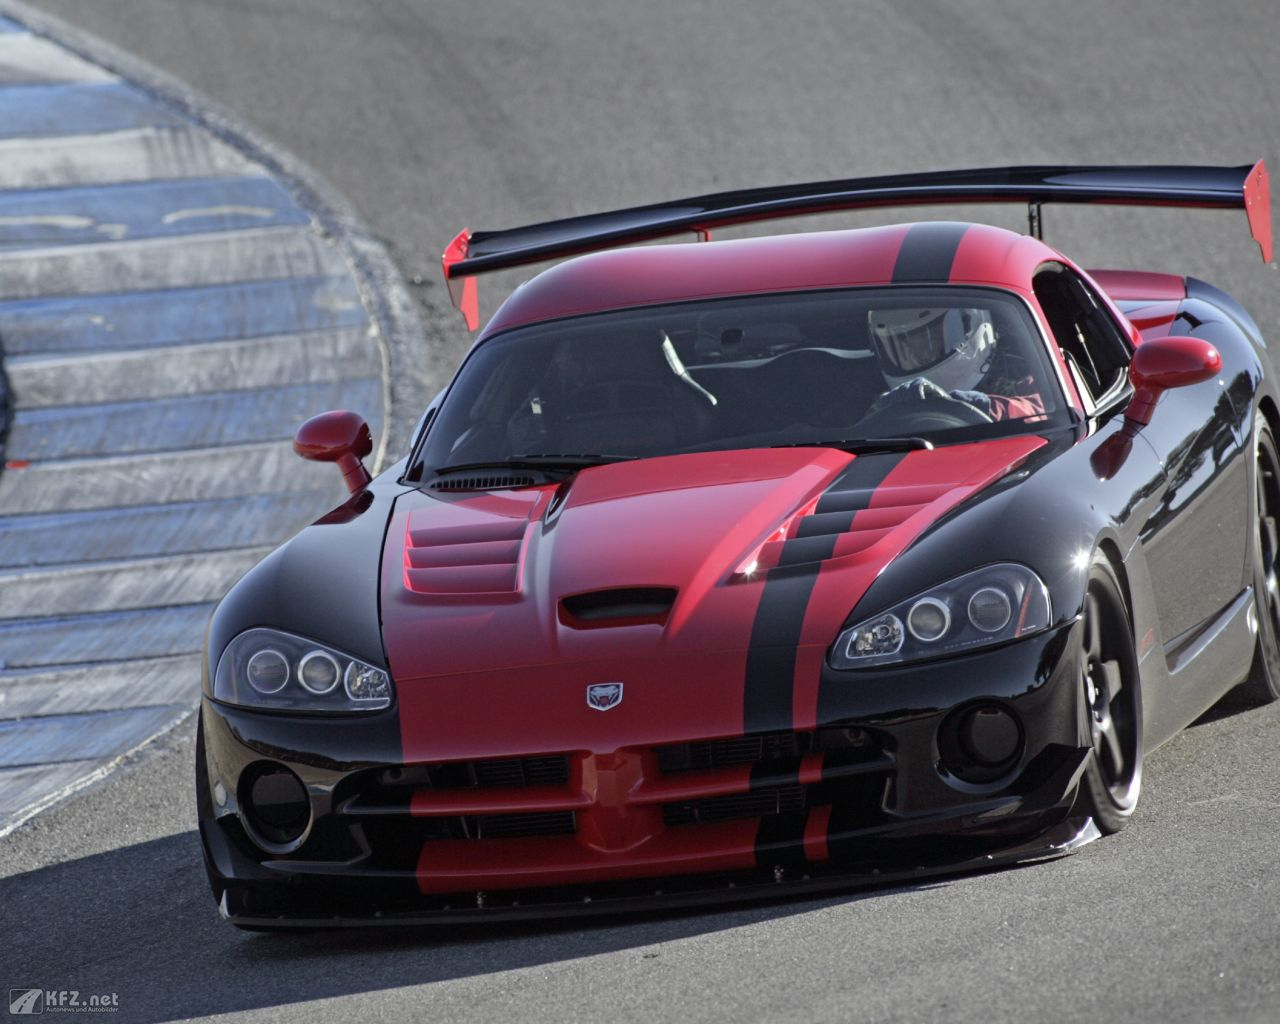 chrysler-dodge-viper-1280x1024-7